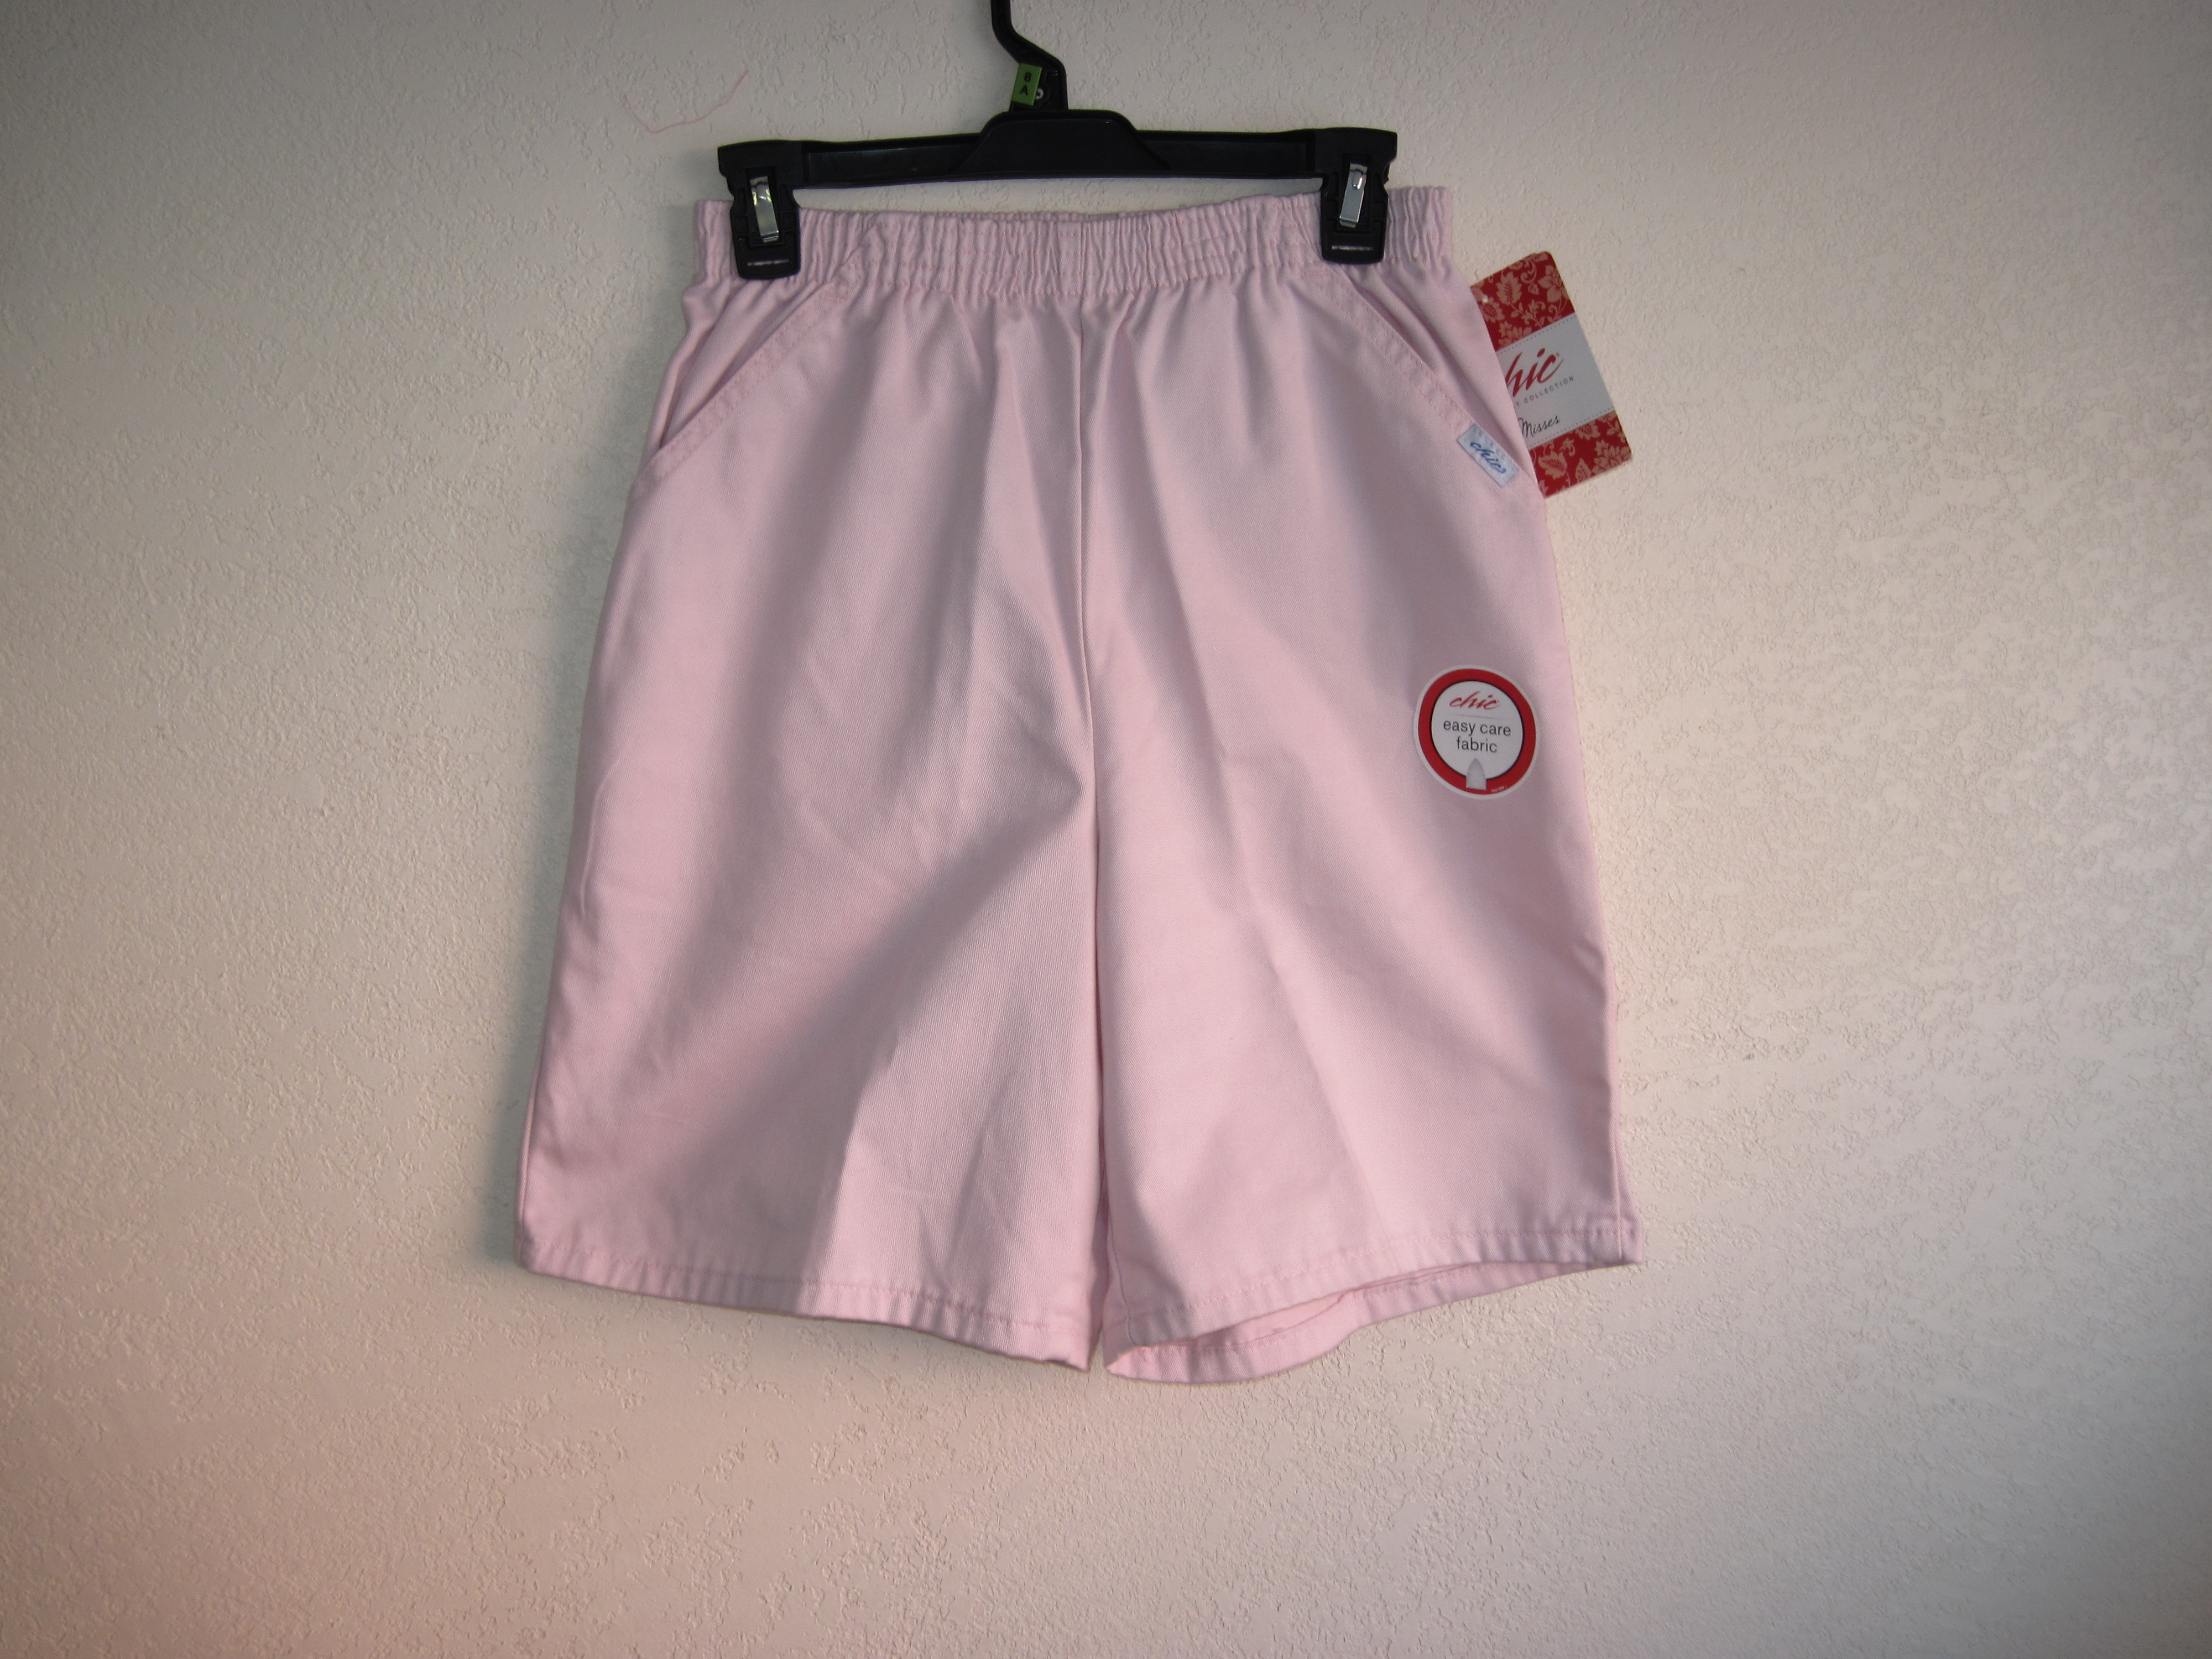 Chic Sz 8A Misses Shorts Pink